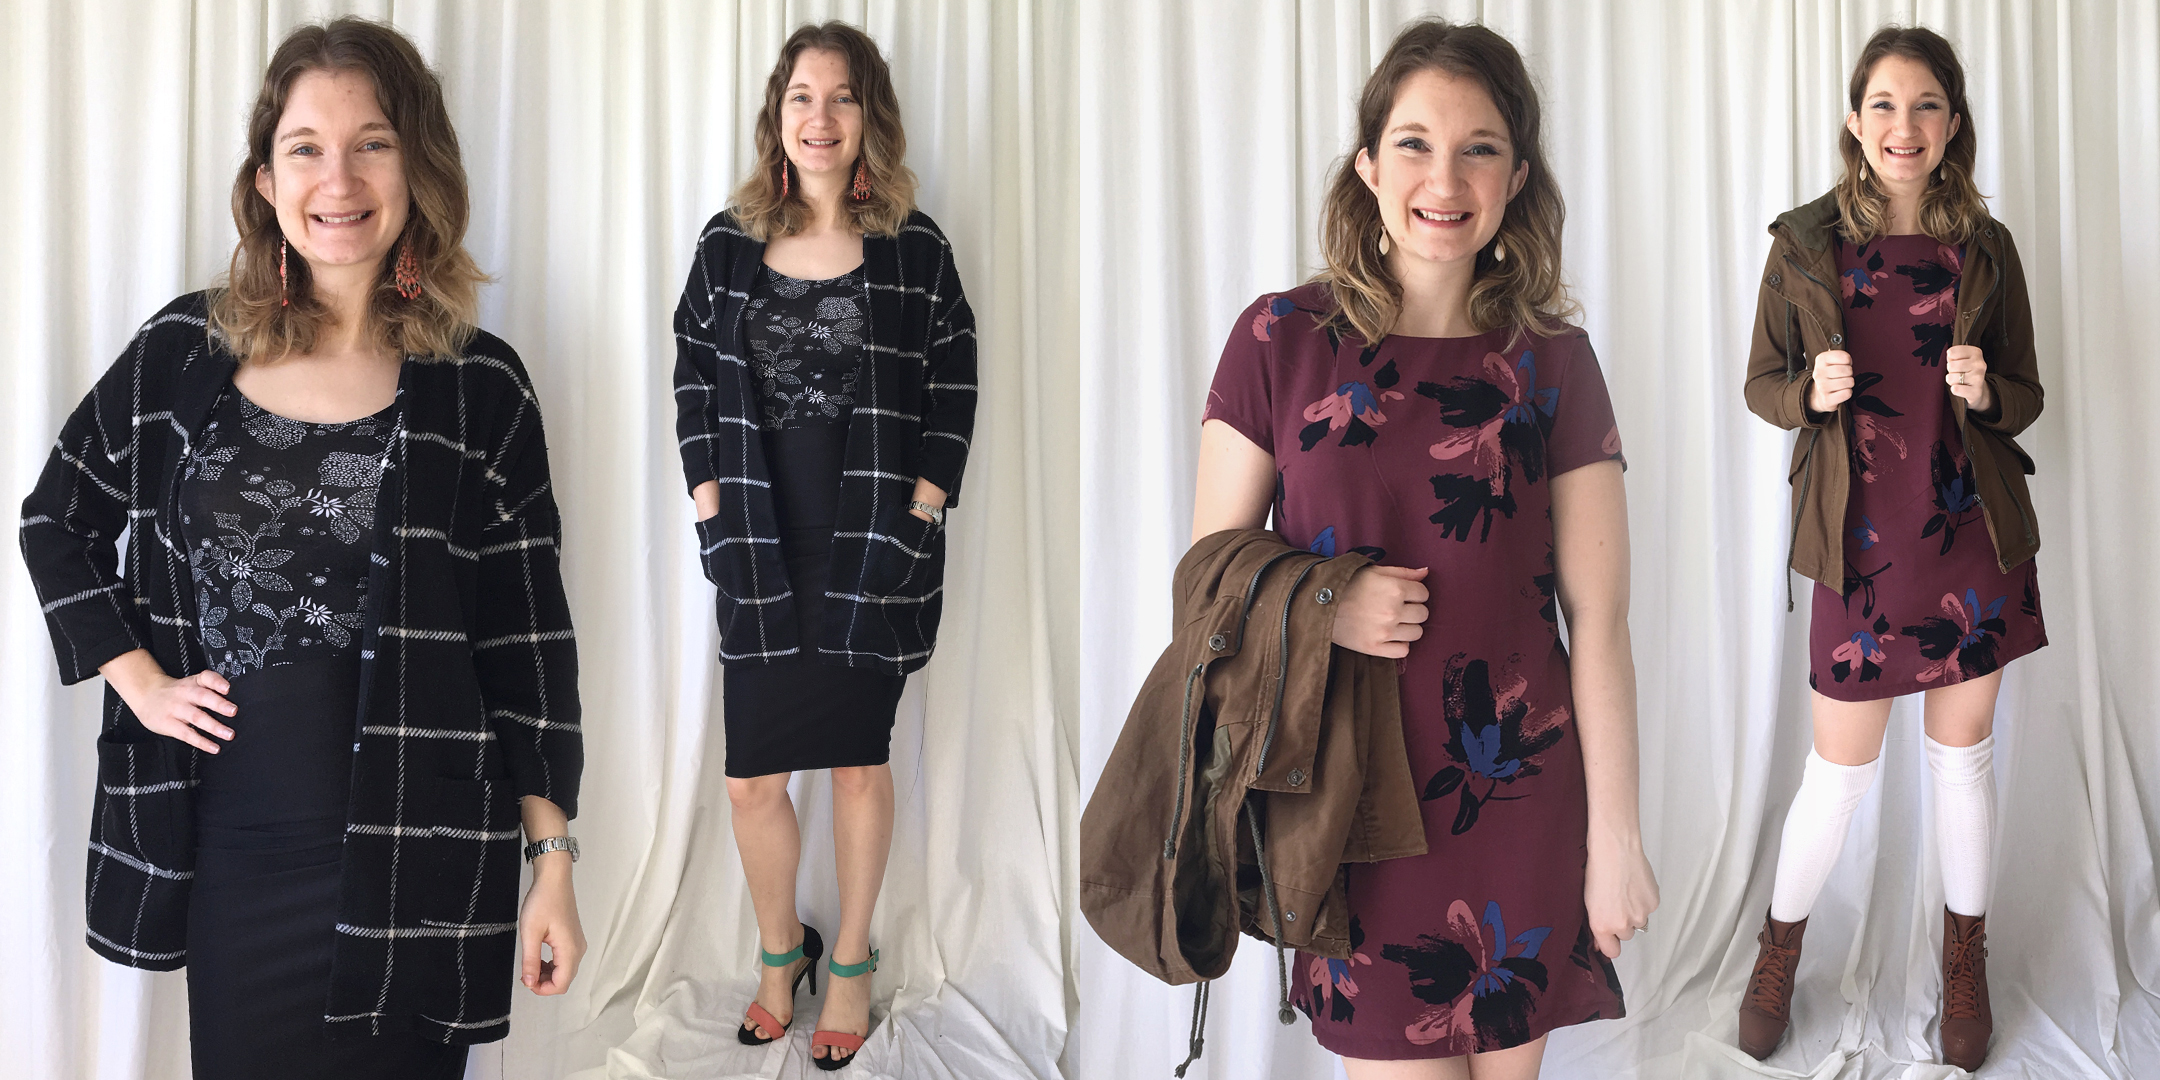 Instagram Round Up #20 Outfits April 1